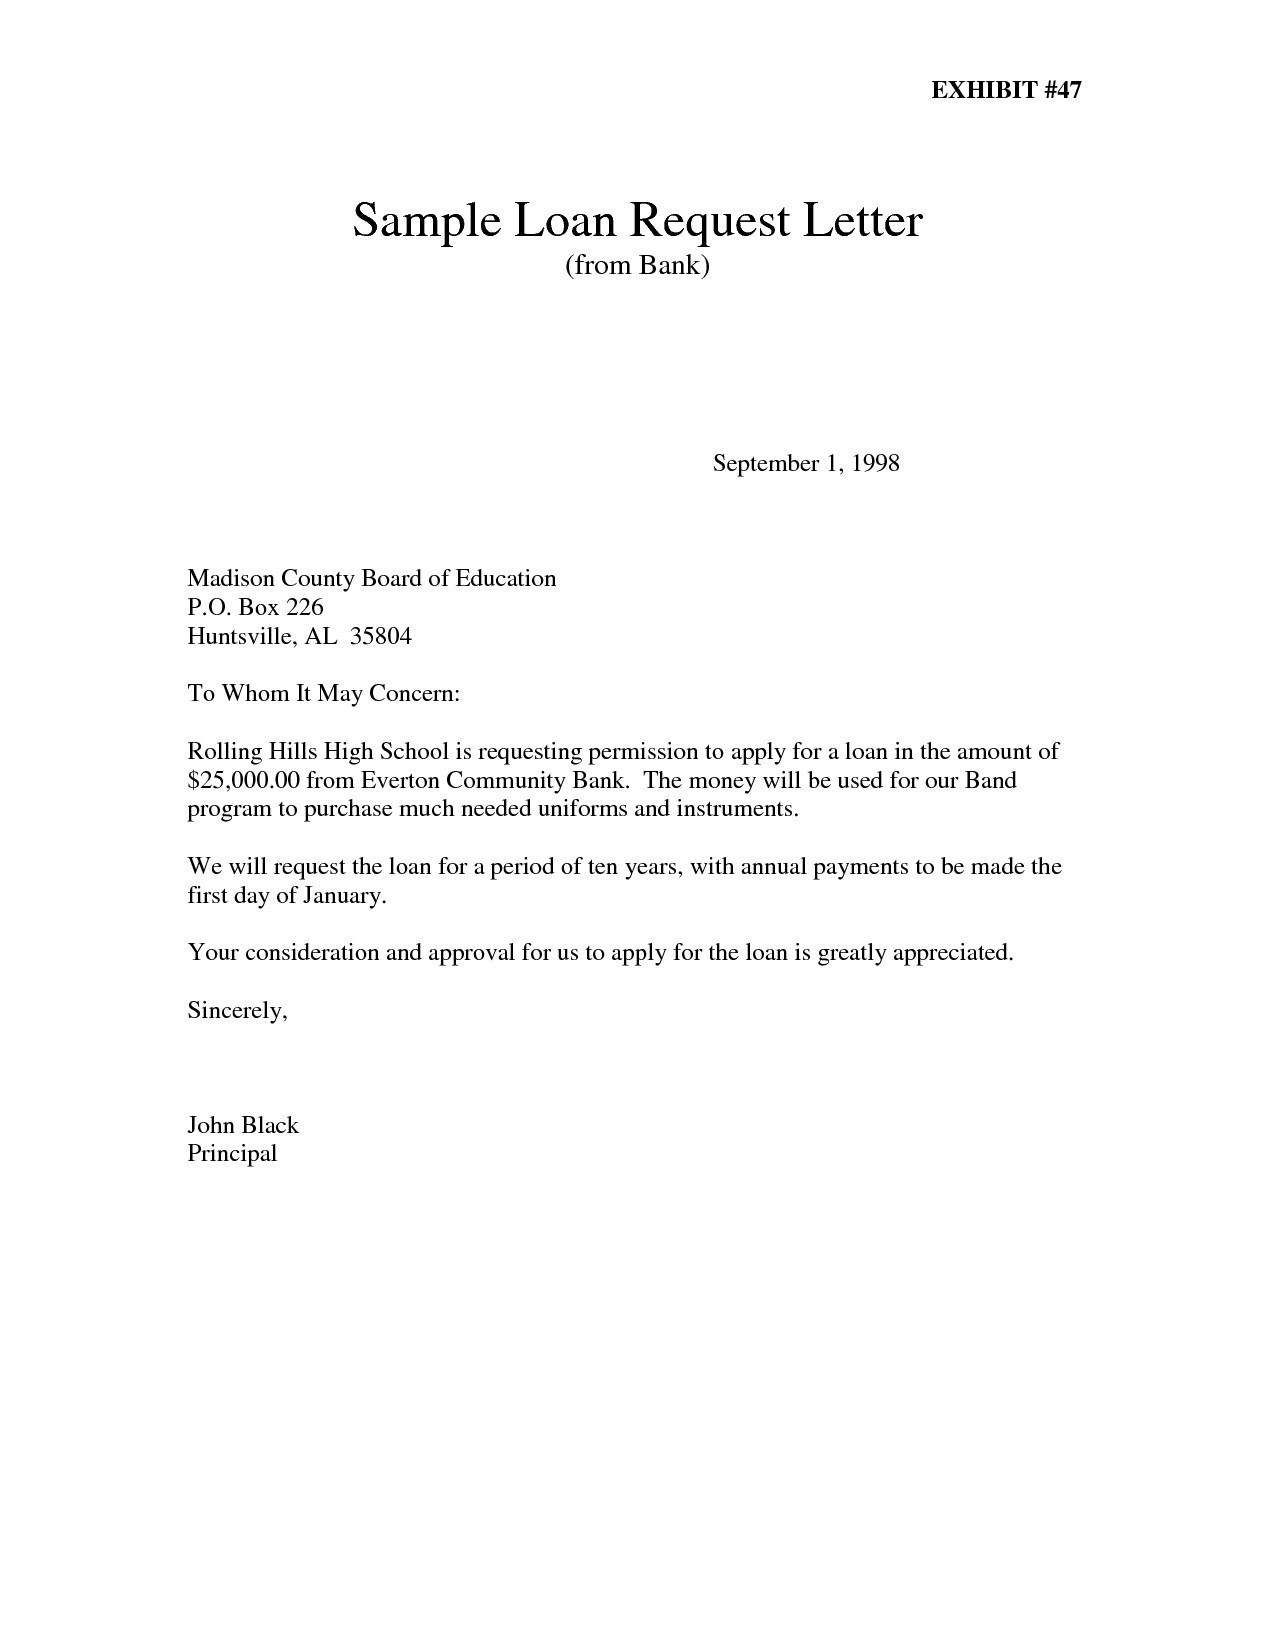 Personal Loan Repayment Letter Template - Best Request Letter to Bank Loan